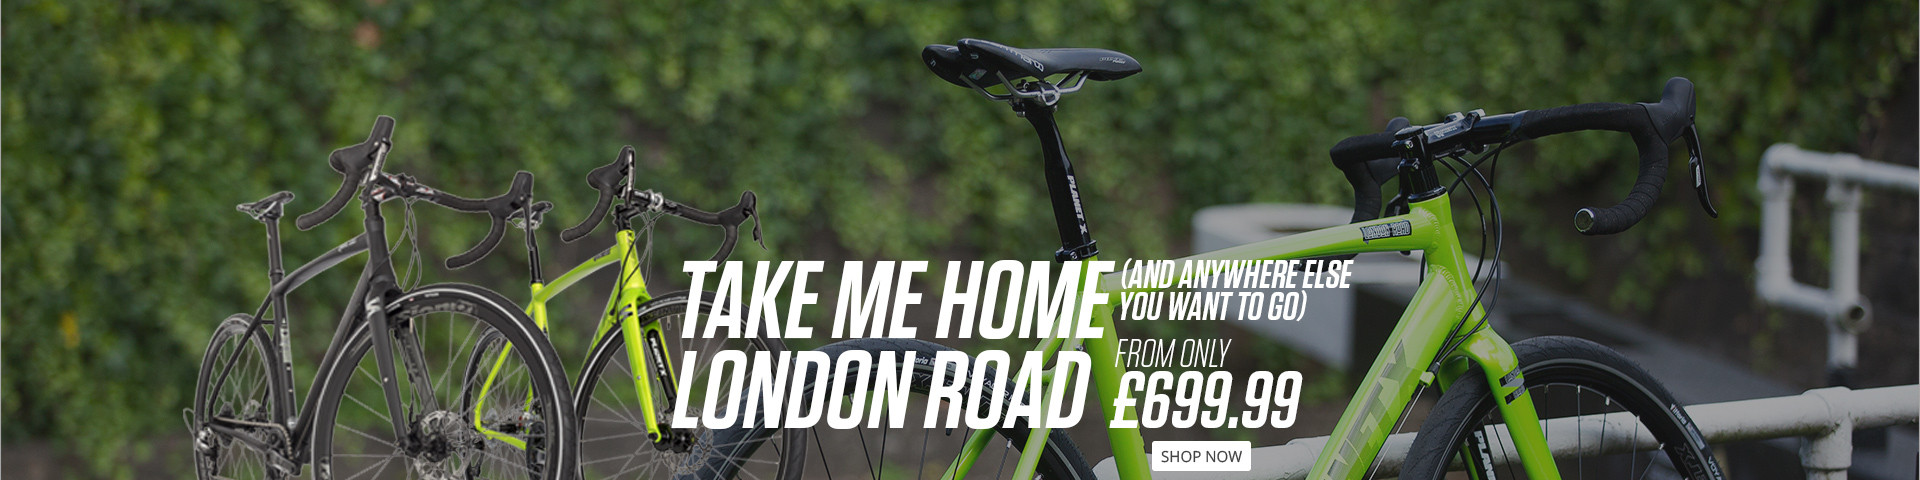 London Road - The Go Anywhere Rod Bike